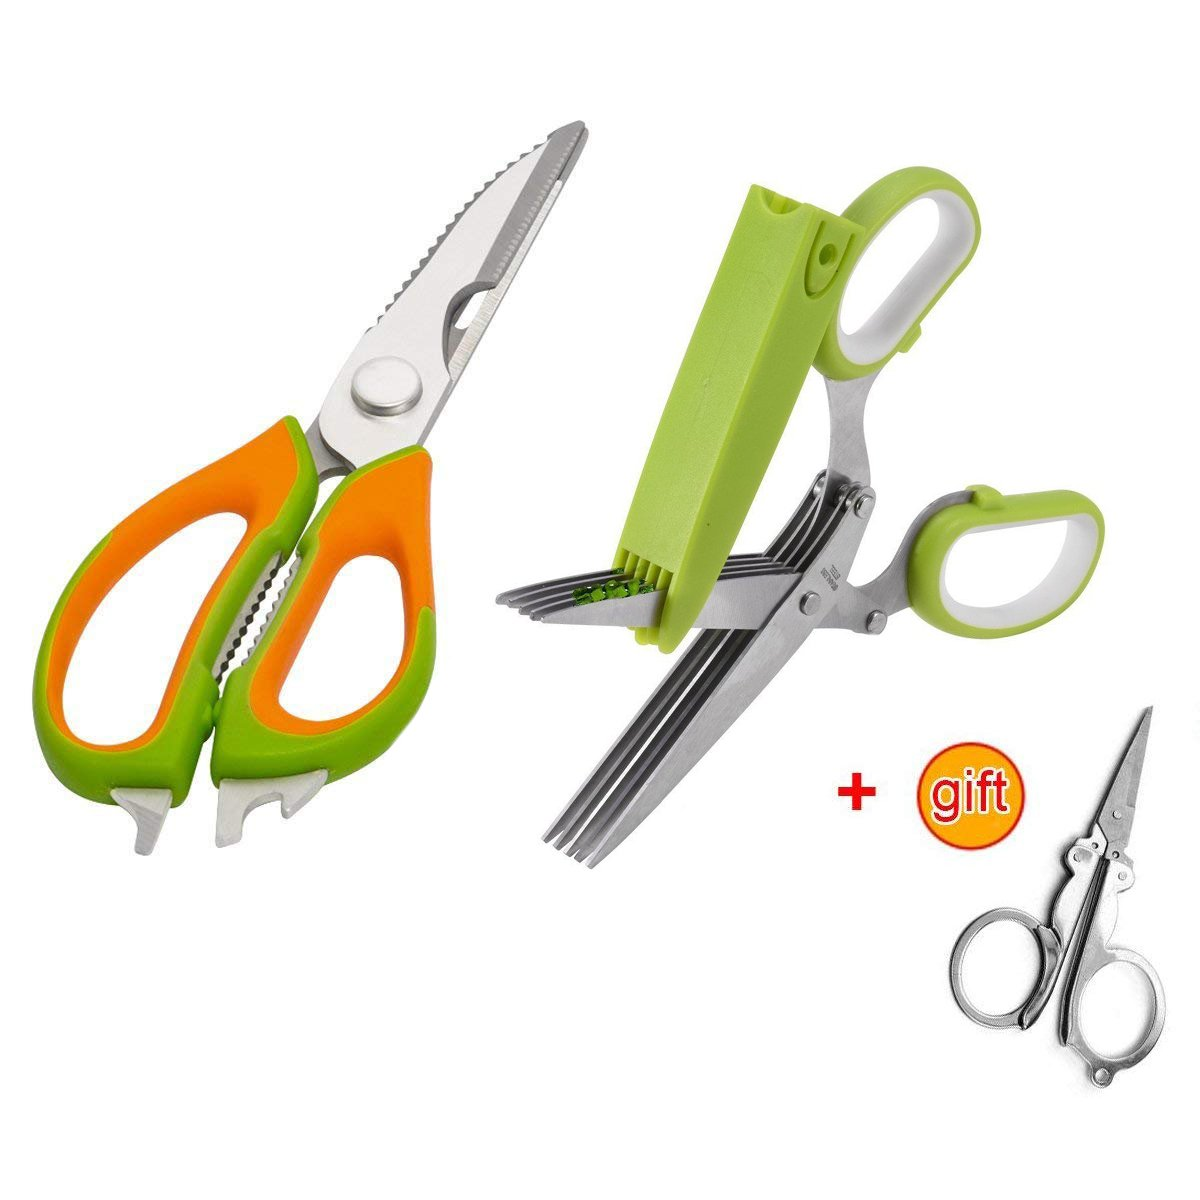 Jasni Kitchen Shears - Best Kitchen Scissors And 5-Blades Functional Utility Kitchen Shears with Cleaning Comb, Stainless Steel Sharp Cutter for Scallion, Mint, Rosemary, Vanilla, Herb, Chili